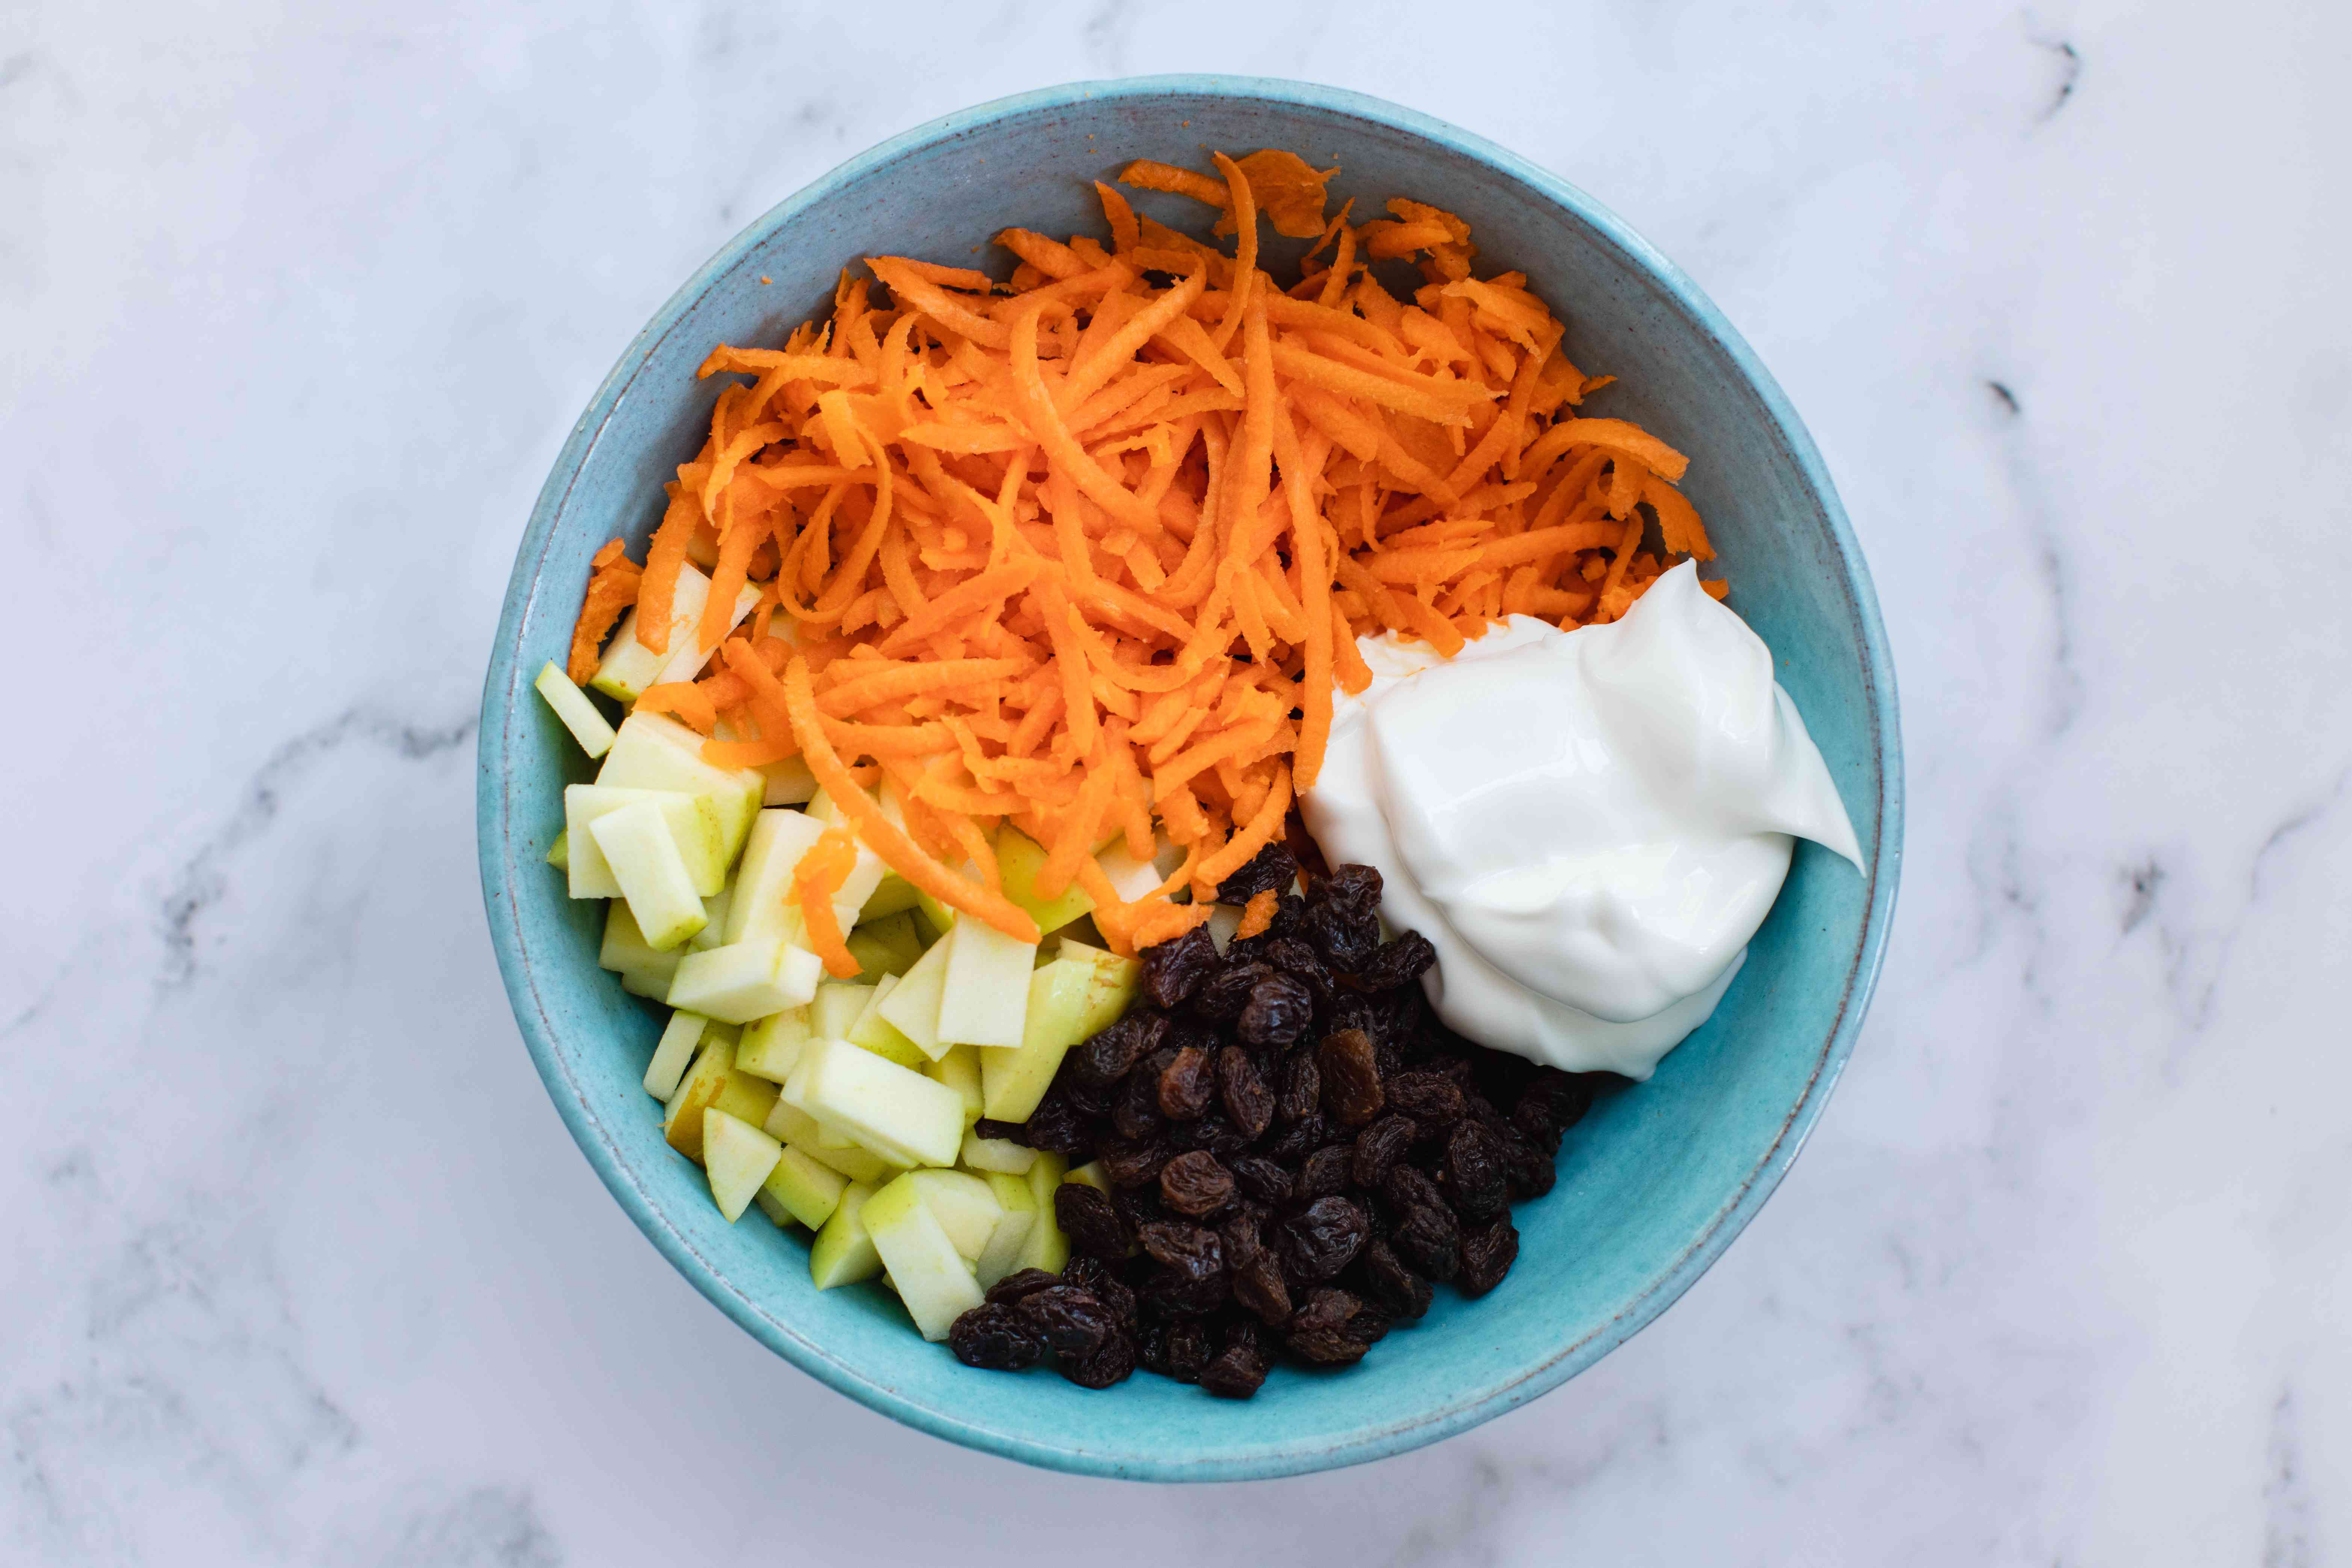 Ingredients to make a Classic Carrot Salad in a bowl.